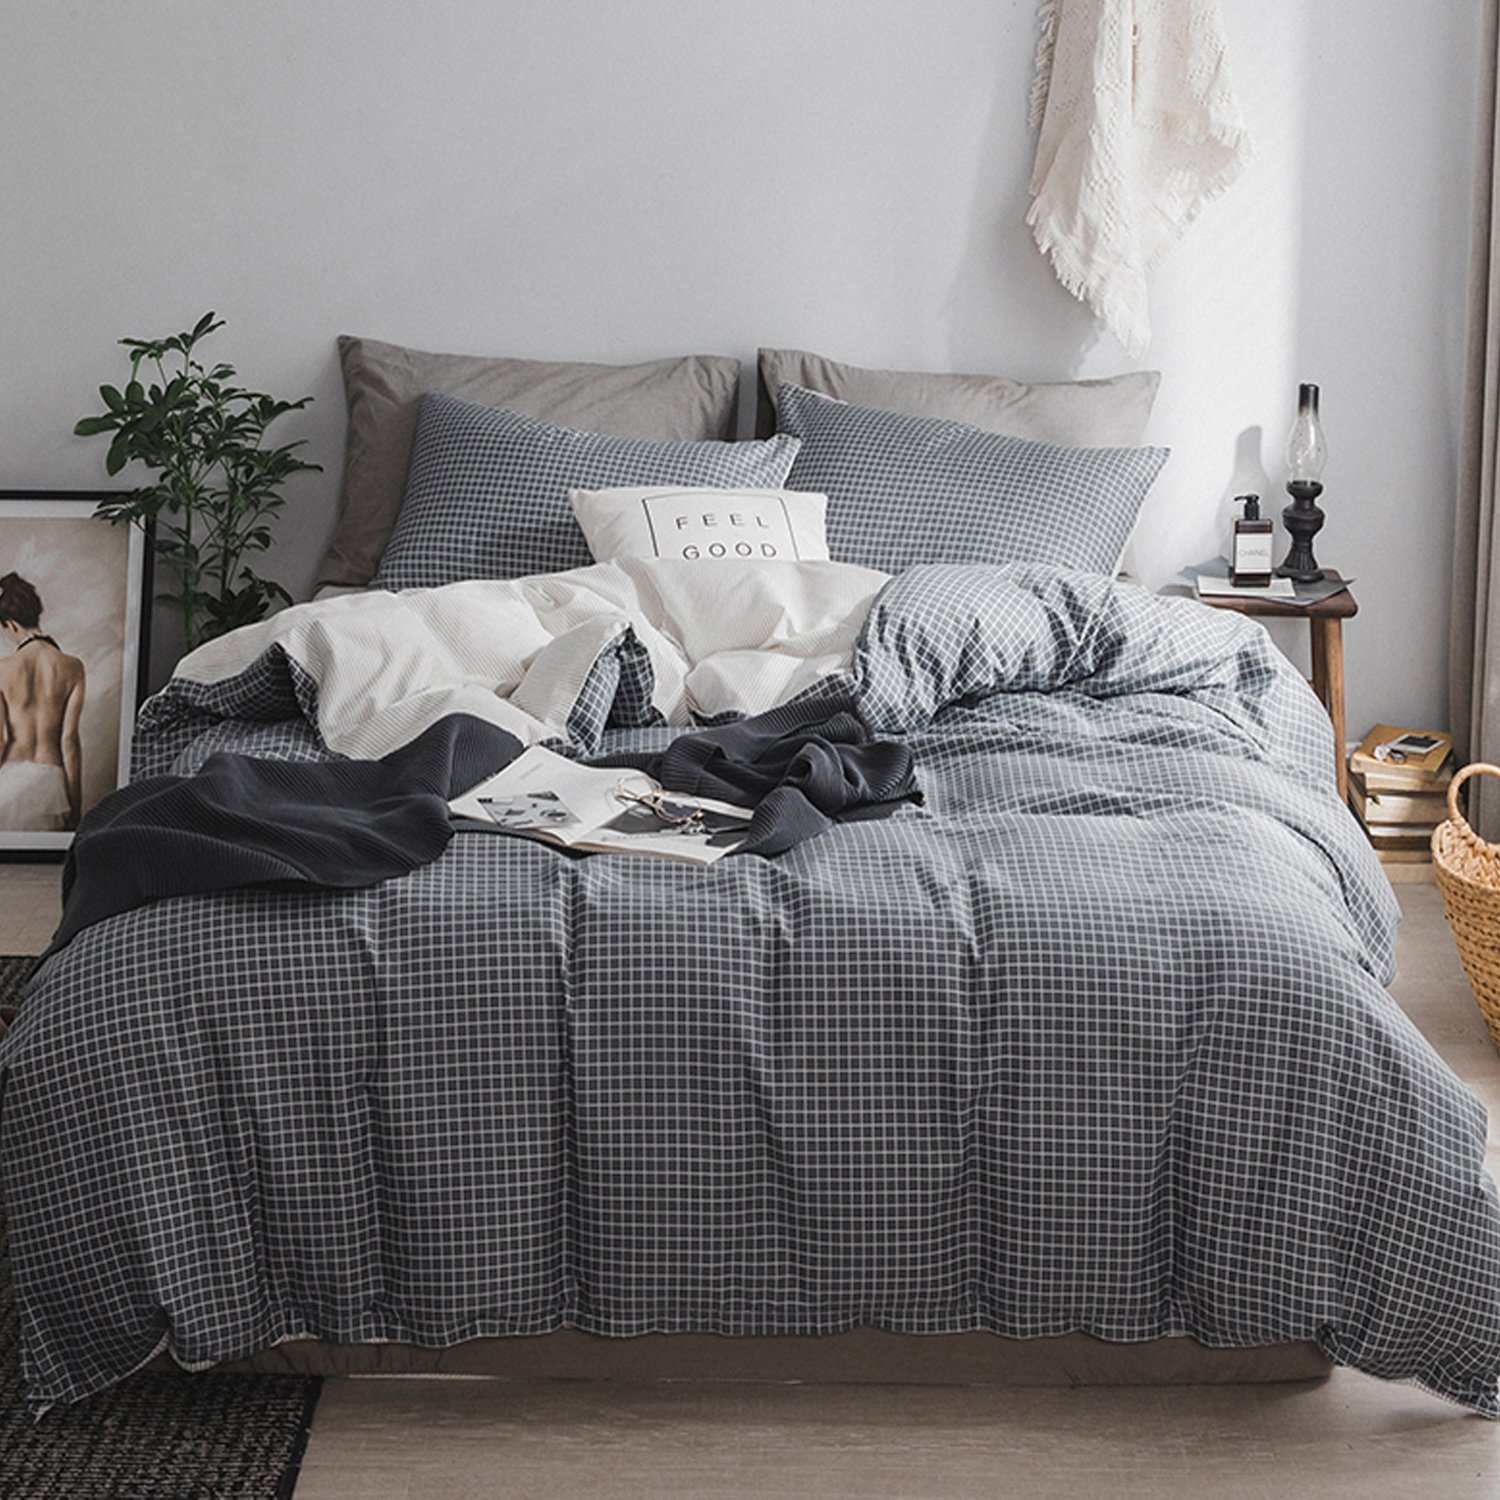 MooMee Duvet Cover Set 100% Cotton 3 Piece Home Bedding Set Soft Breathable Wrinkle Resistant Grey White Reversible Queen